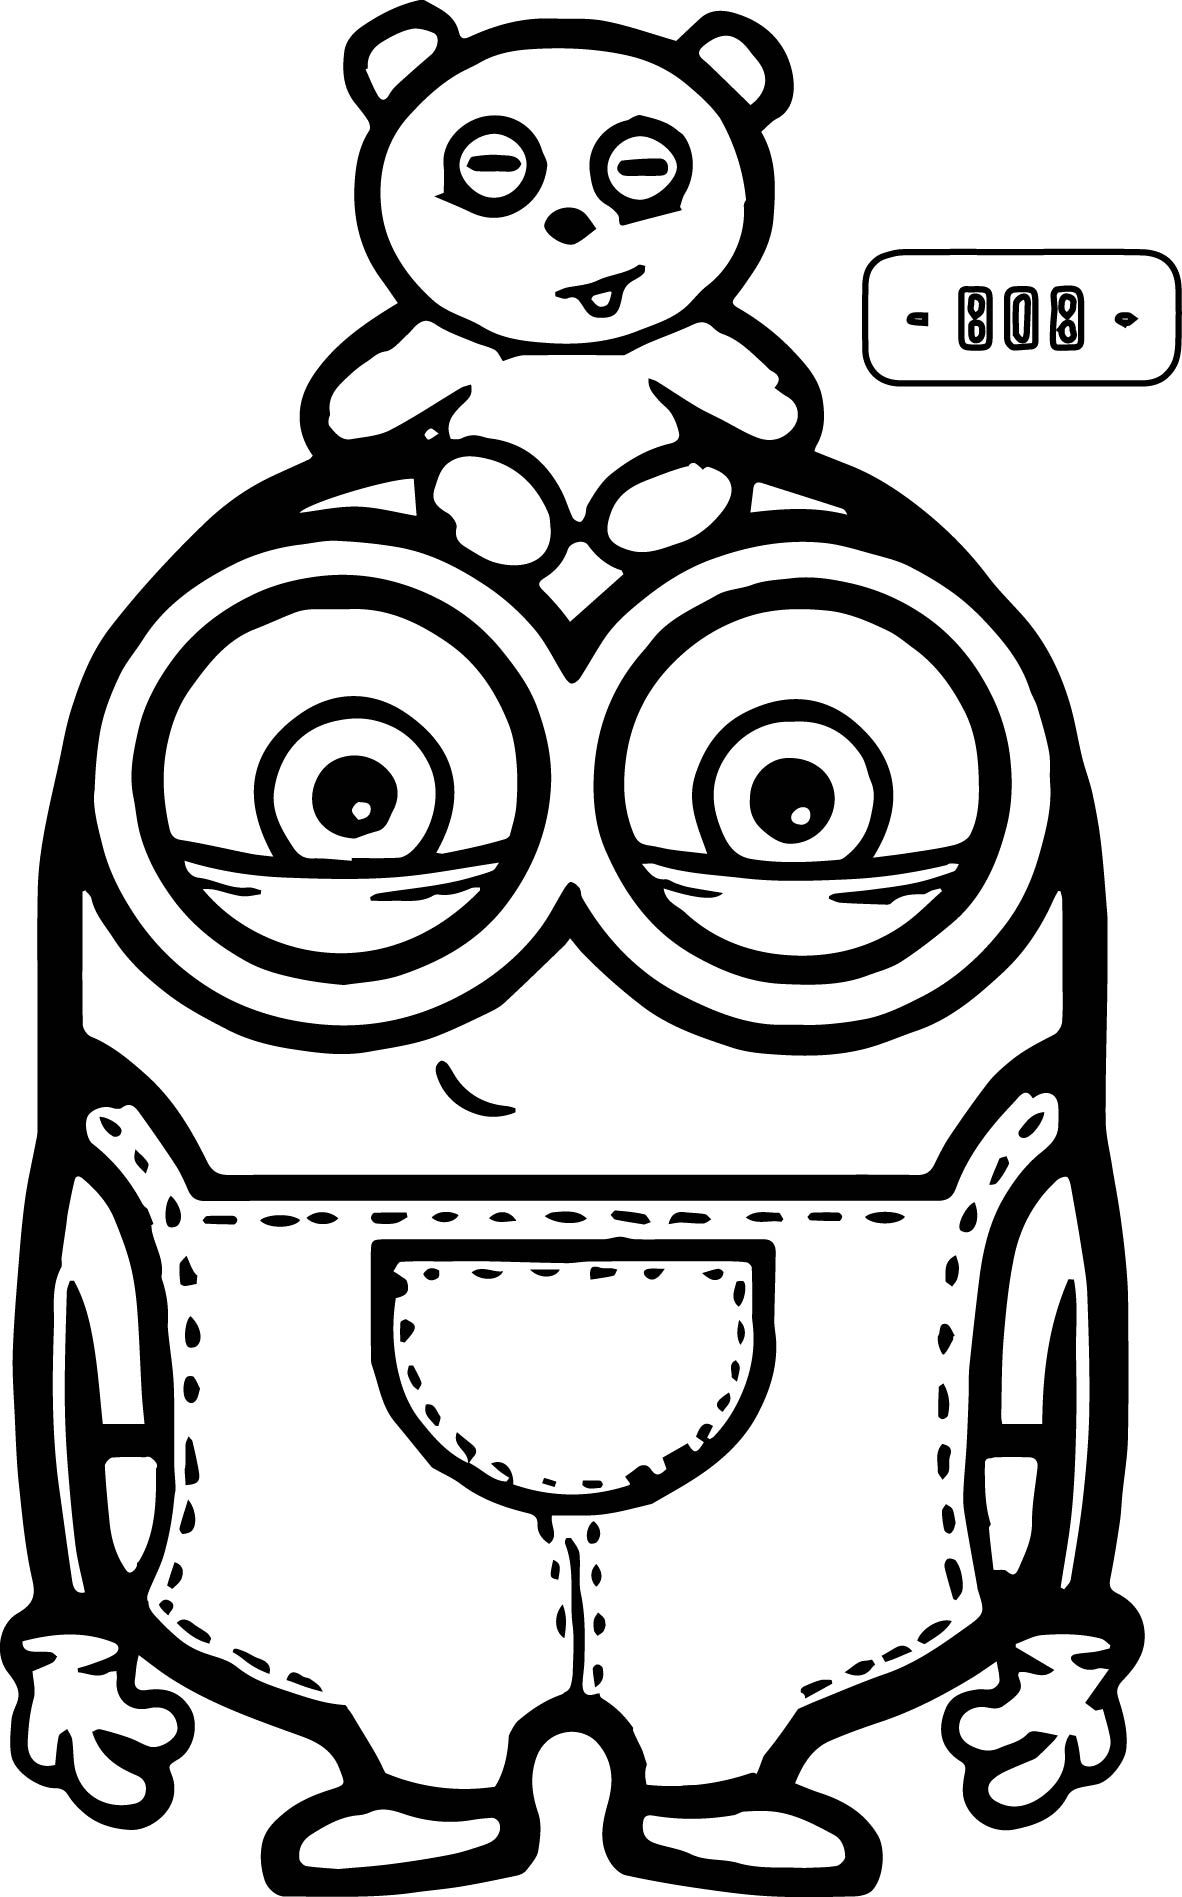 Cute Bob And Bear Minions Coloring Page | Bobs, Bears and Woodburning